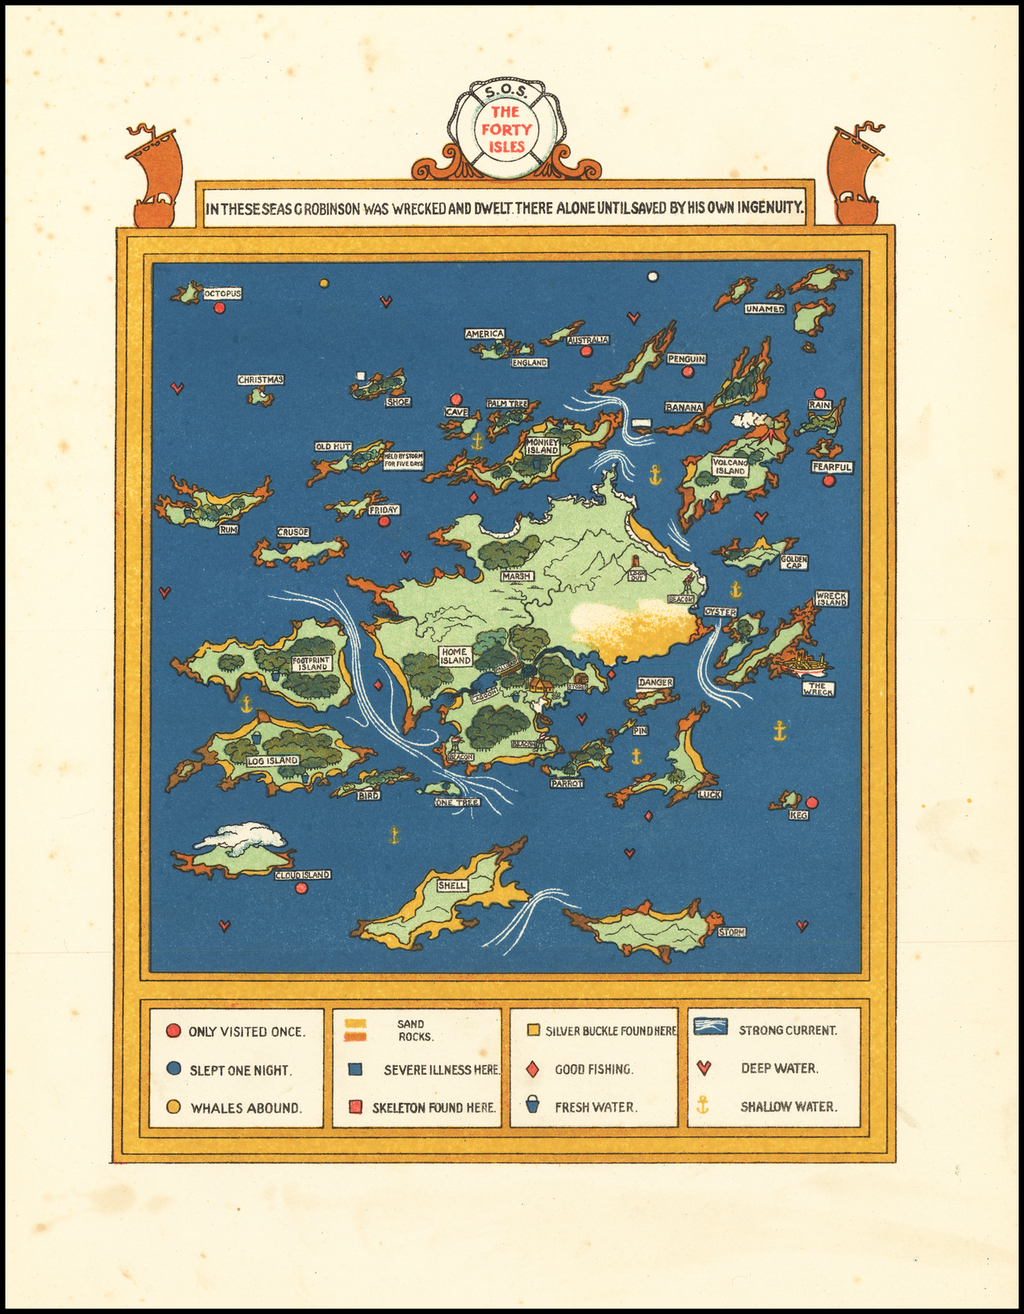 The Forty Isles -- In These Seas G Robinson Was Wrecked And Dwelt There Alone Until Saved By His Own Integrity By Gilbert Anthony Pownall